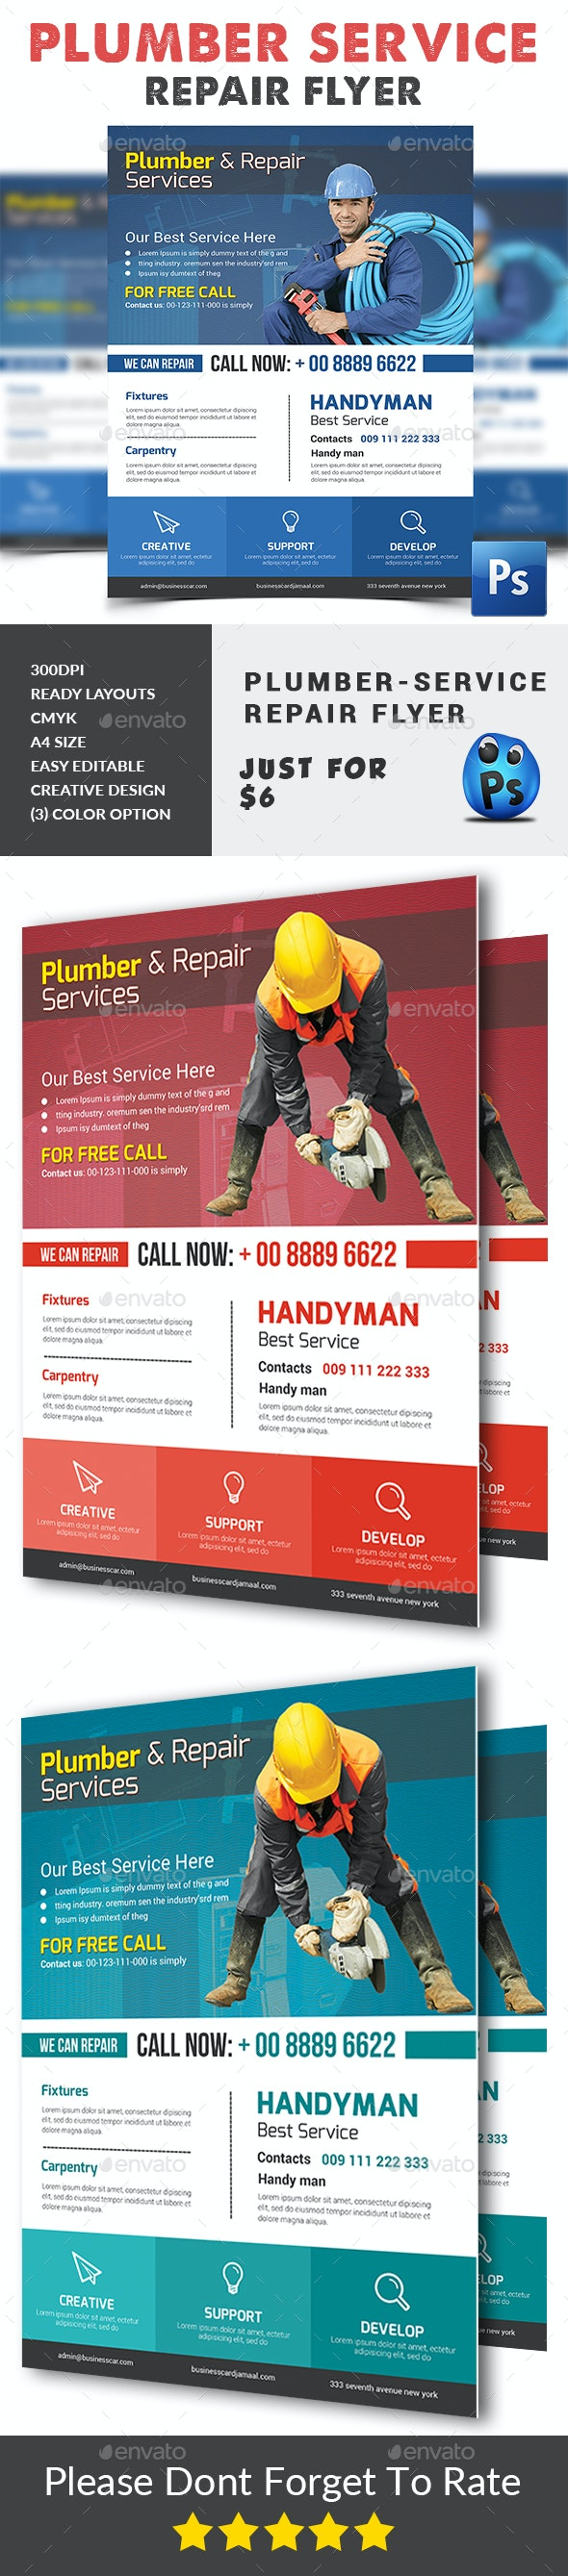 Plumber Service Flyer Print Templates - Corporate Flyers